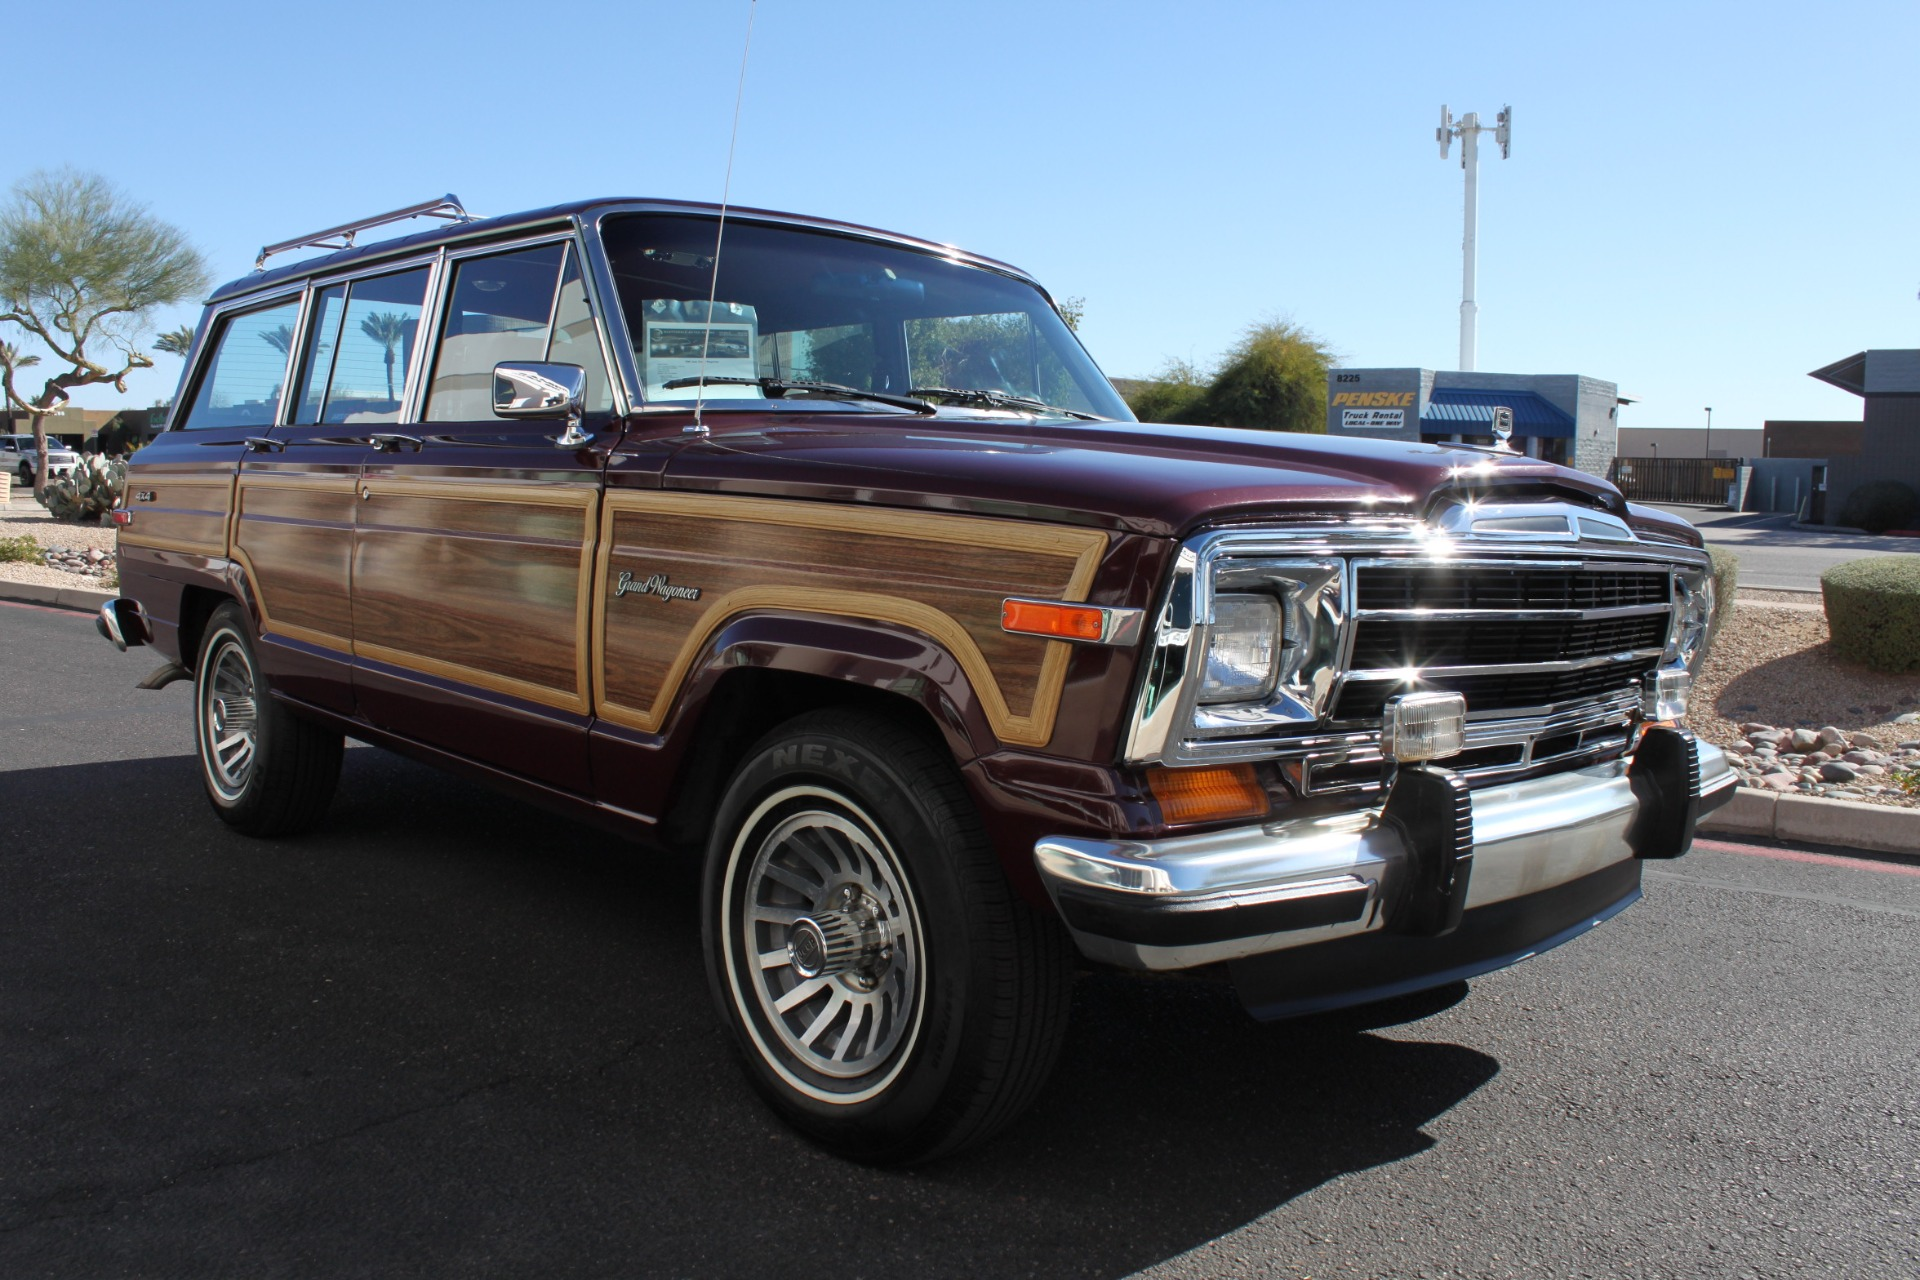 Used-1988-Jeep-Grand-Wagoneer-Mercedes-Benz